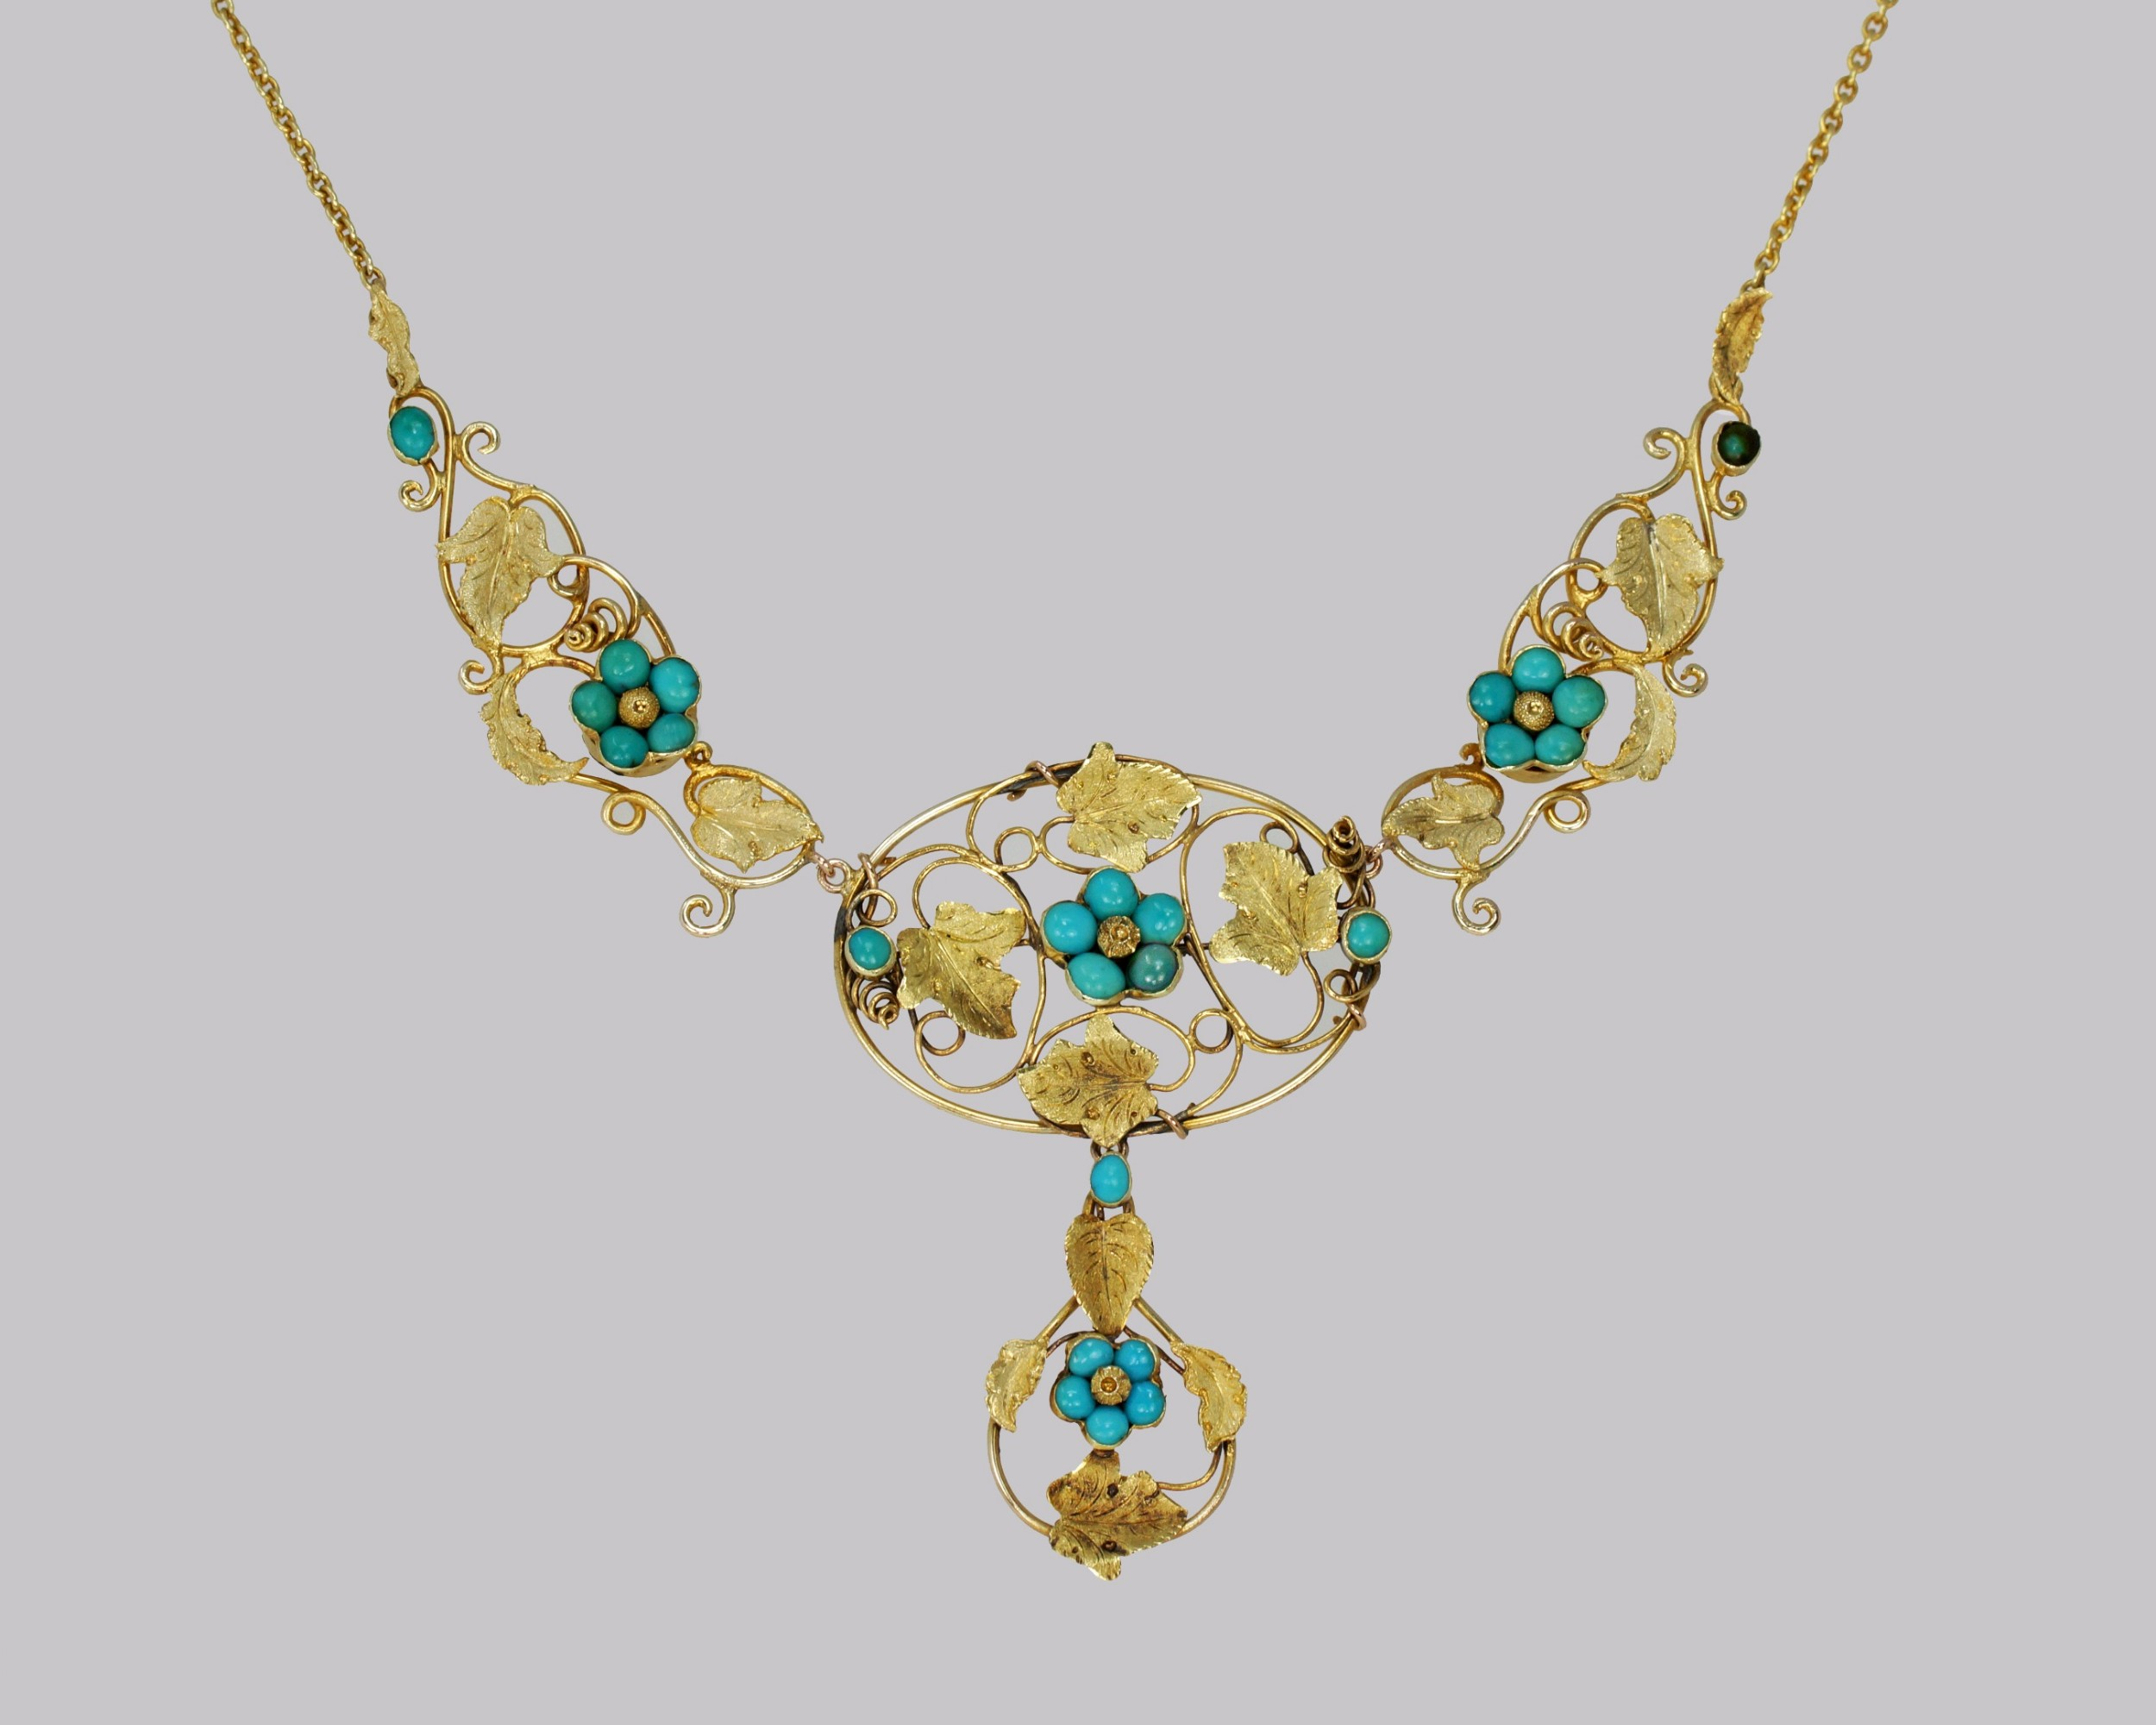 victorian 15ct gold turquoise necklace antique floral scroll necklace circa 1860